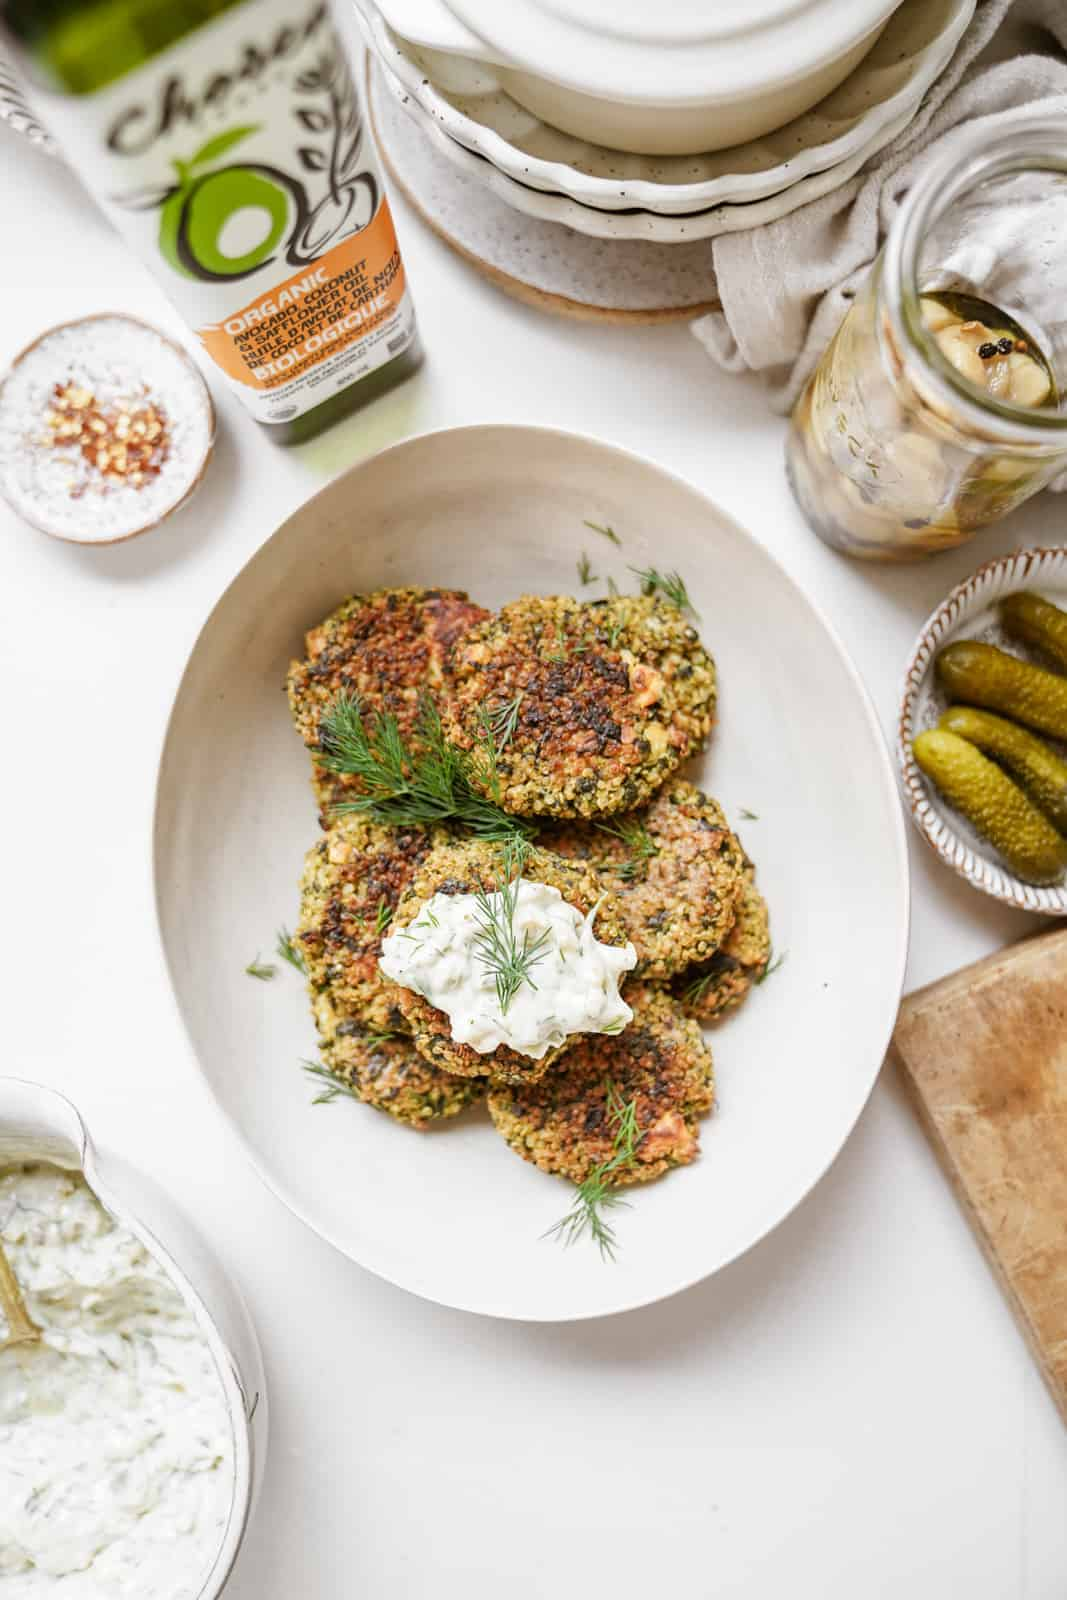 Quinoa and Spinach Patties on serving dish on countertop surrounded by ingredients.